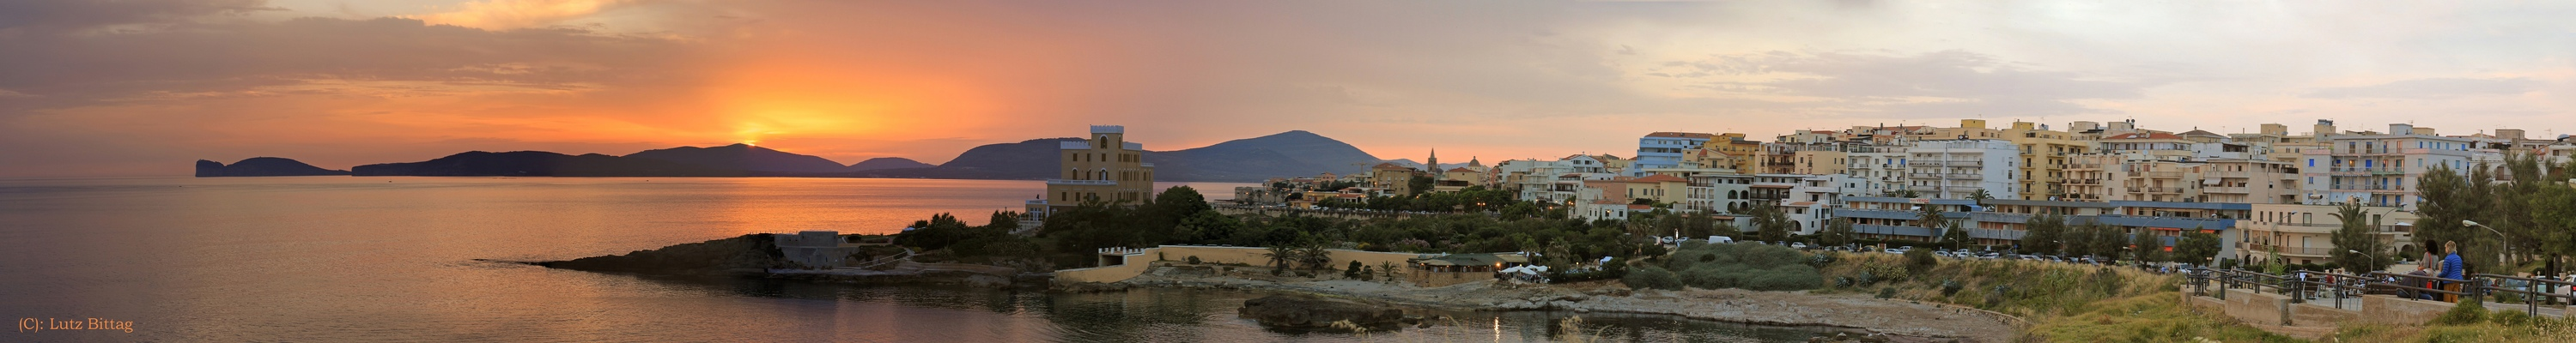 Night & Day in Alghero (Panorama zum Ziehen)